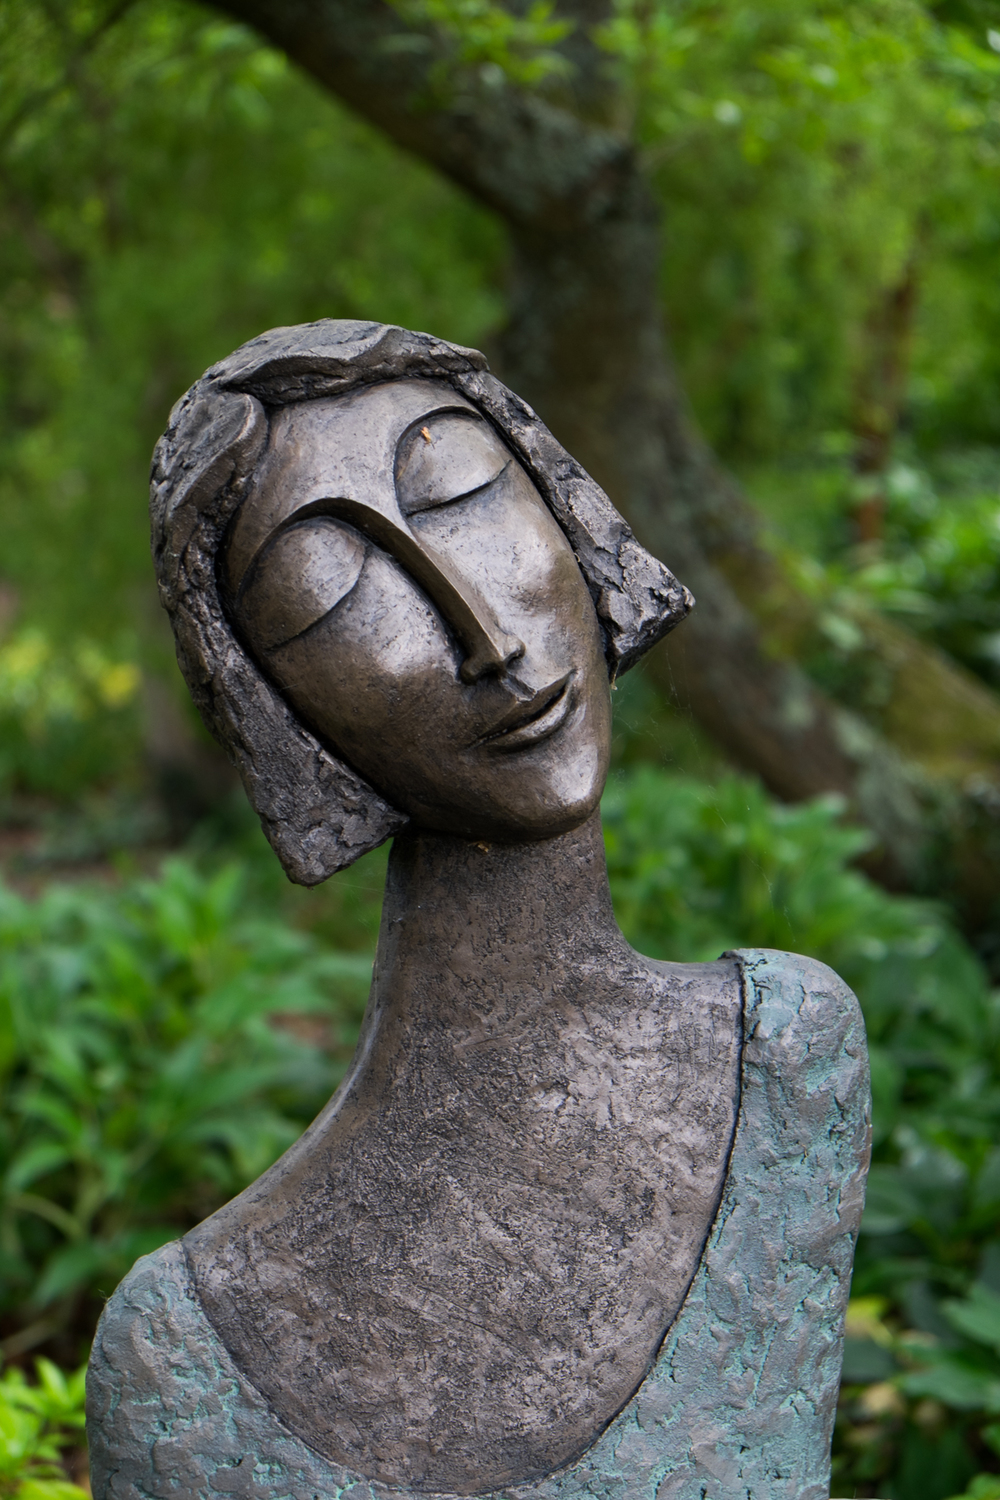 Sir Harold Hillier Gardens: Art in the Garden